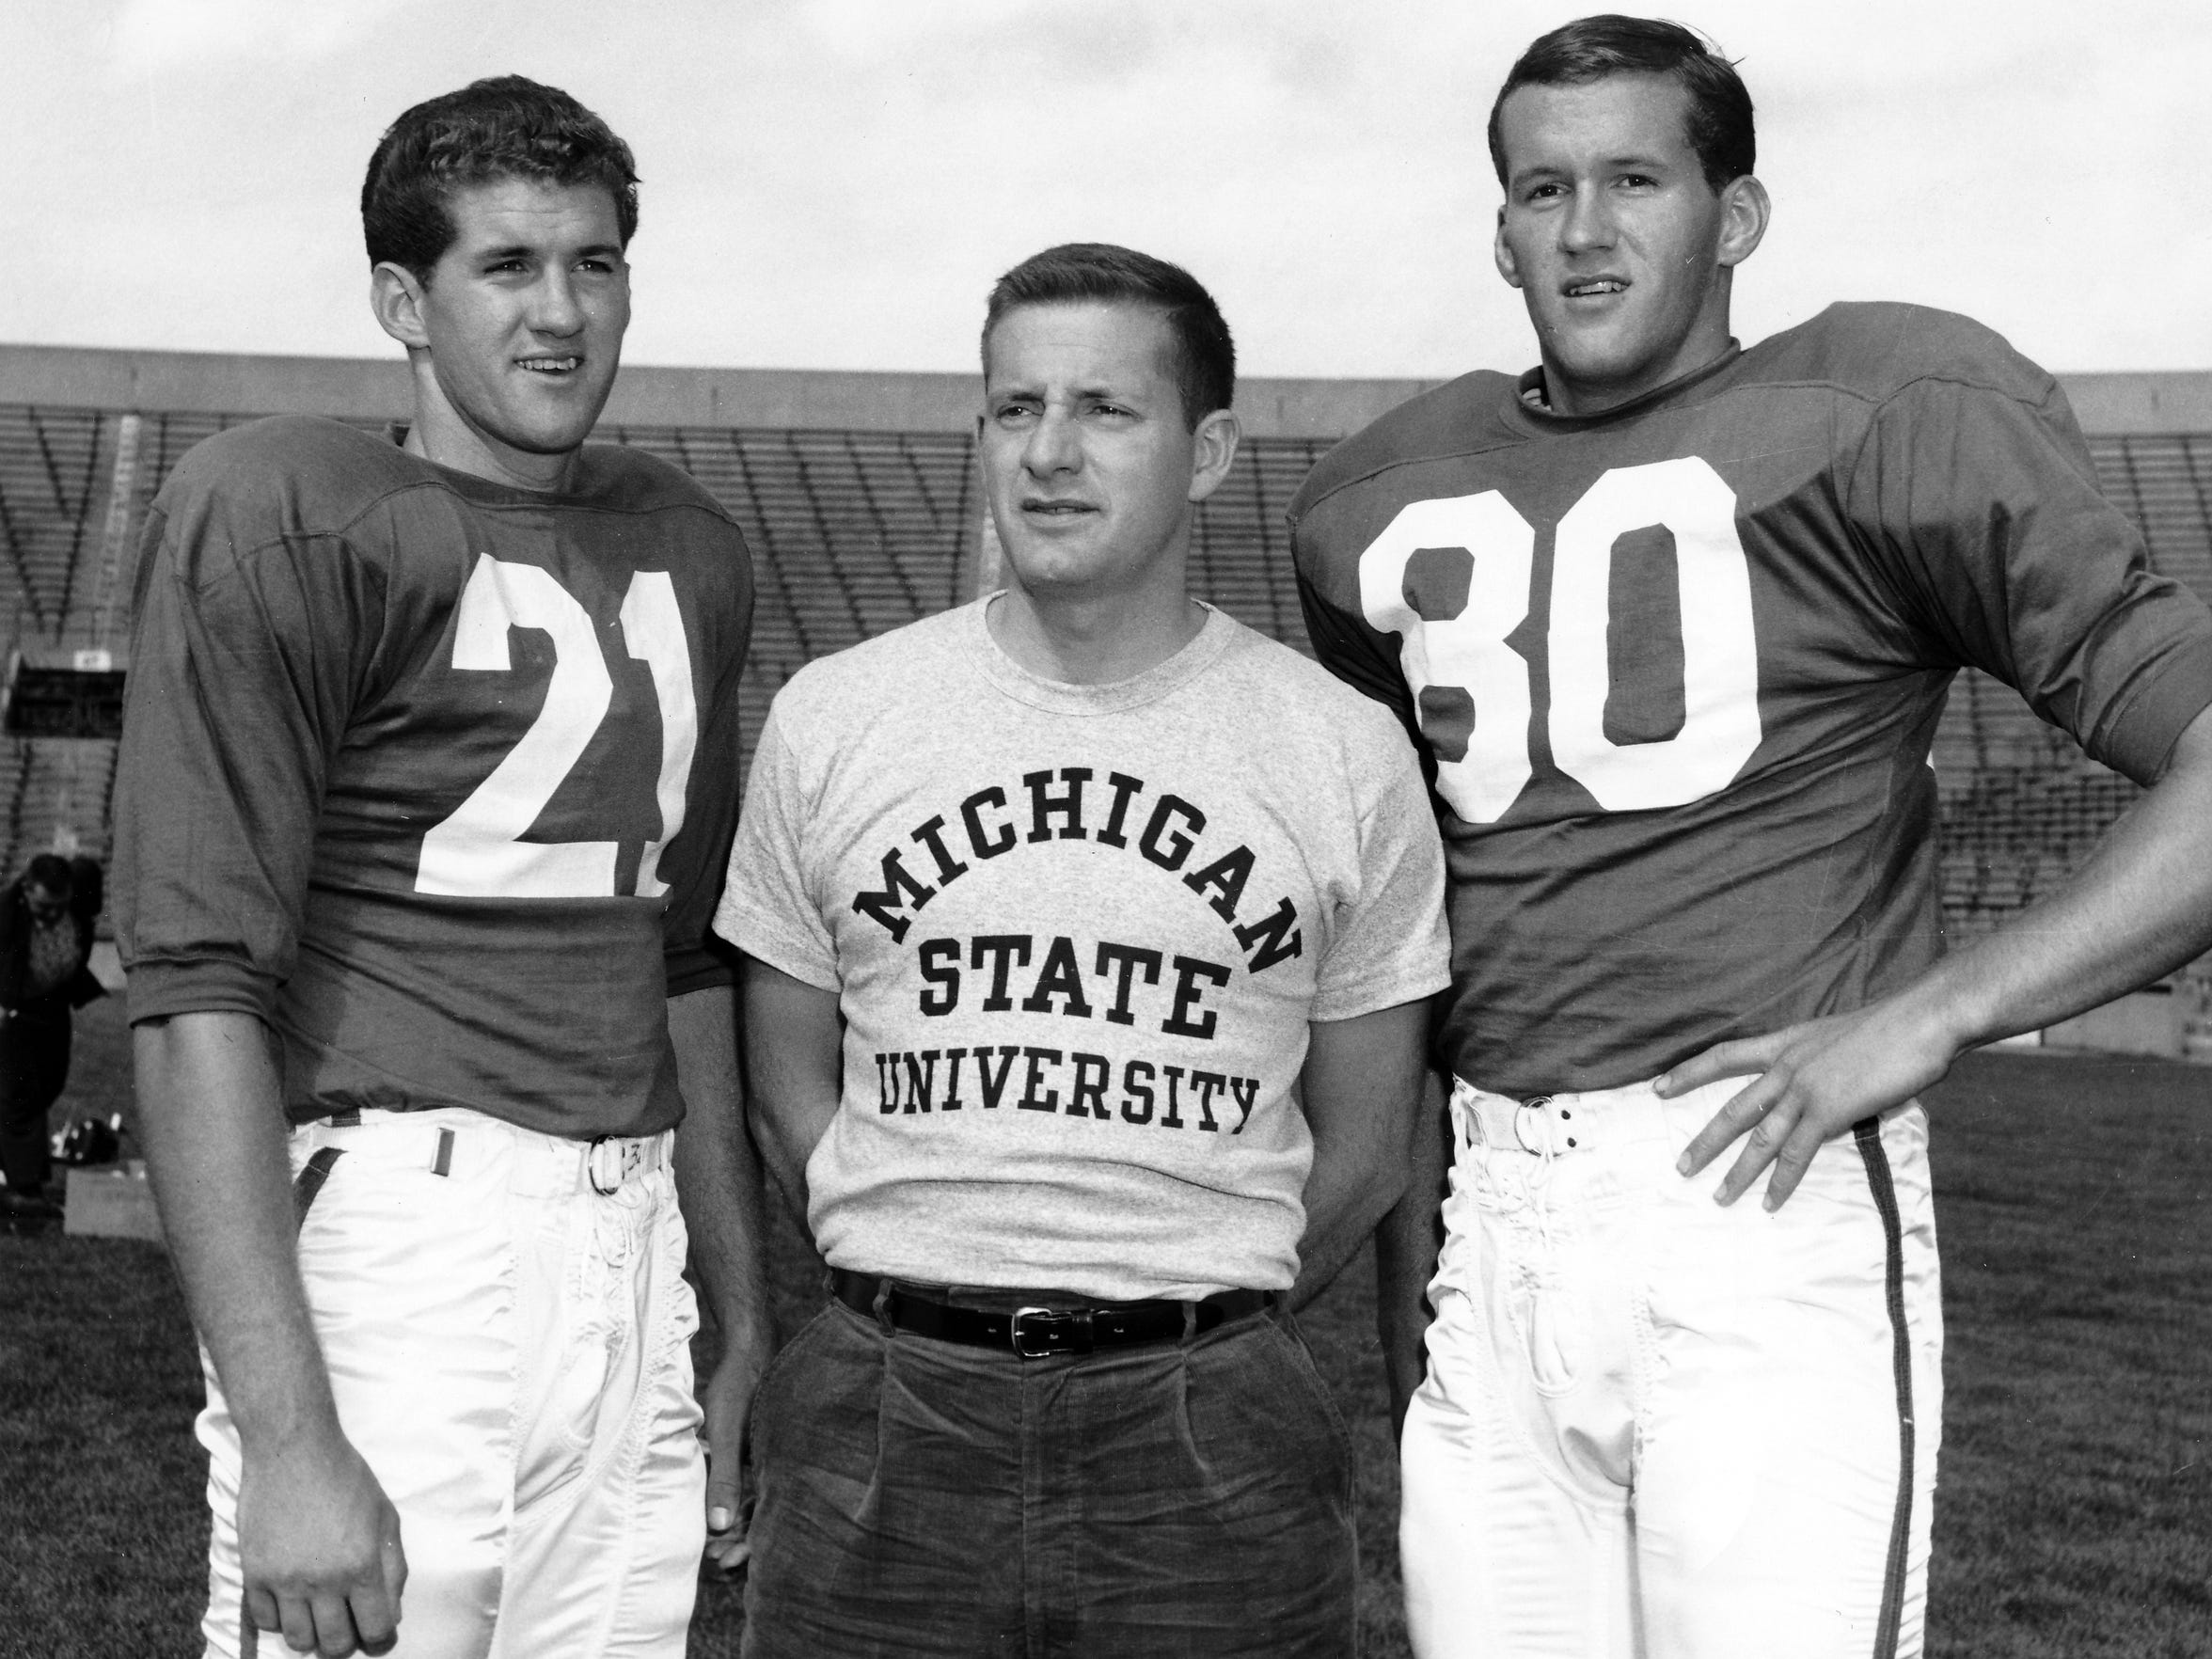 Michigan State University quarterback Dick Proebstle, left, appears with assistant coach John McVay, middle, and his younger brother and teammate Jim Proebstle. Jim wrote a 2015 book exploring the behavioral and other problems caused by Dick's chronic traumatic encephalopathy, which was likely due to head injuries sustained while playing football.